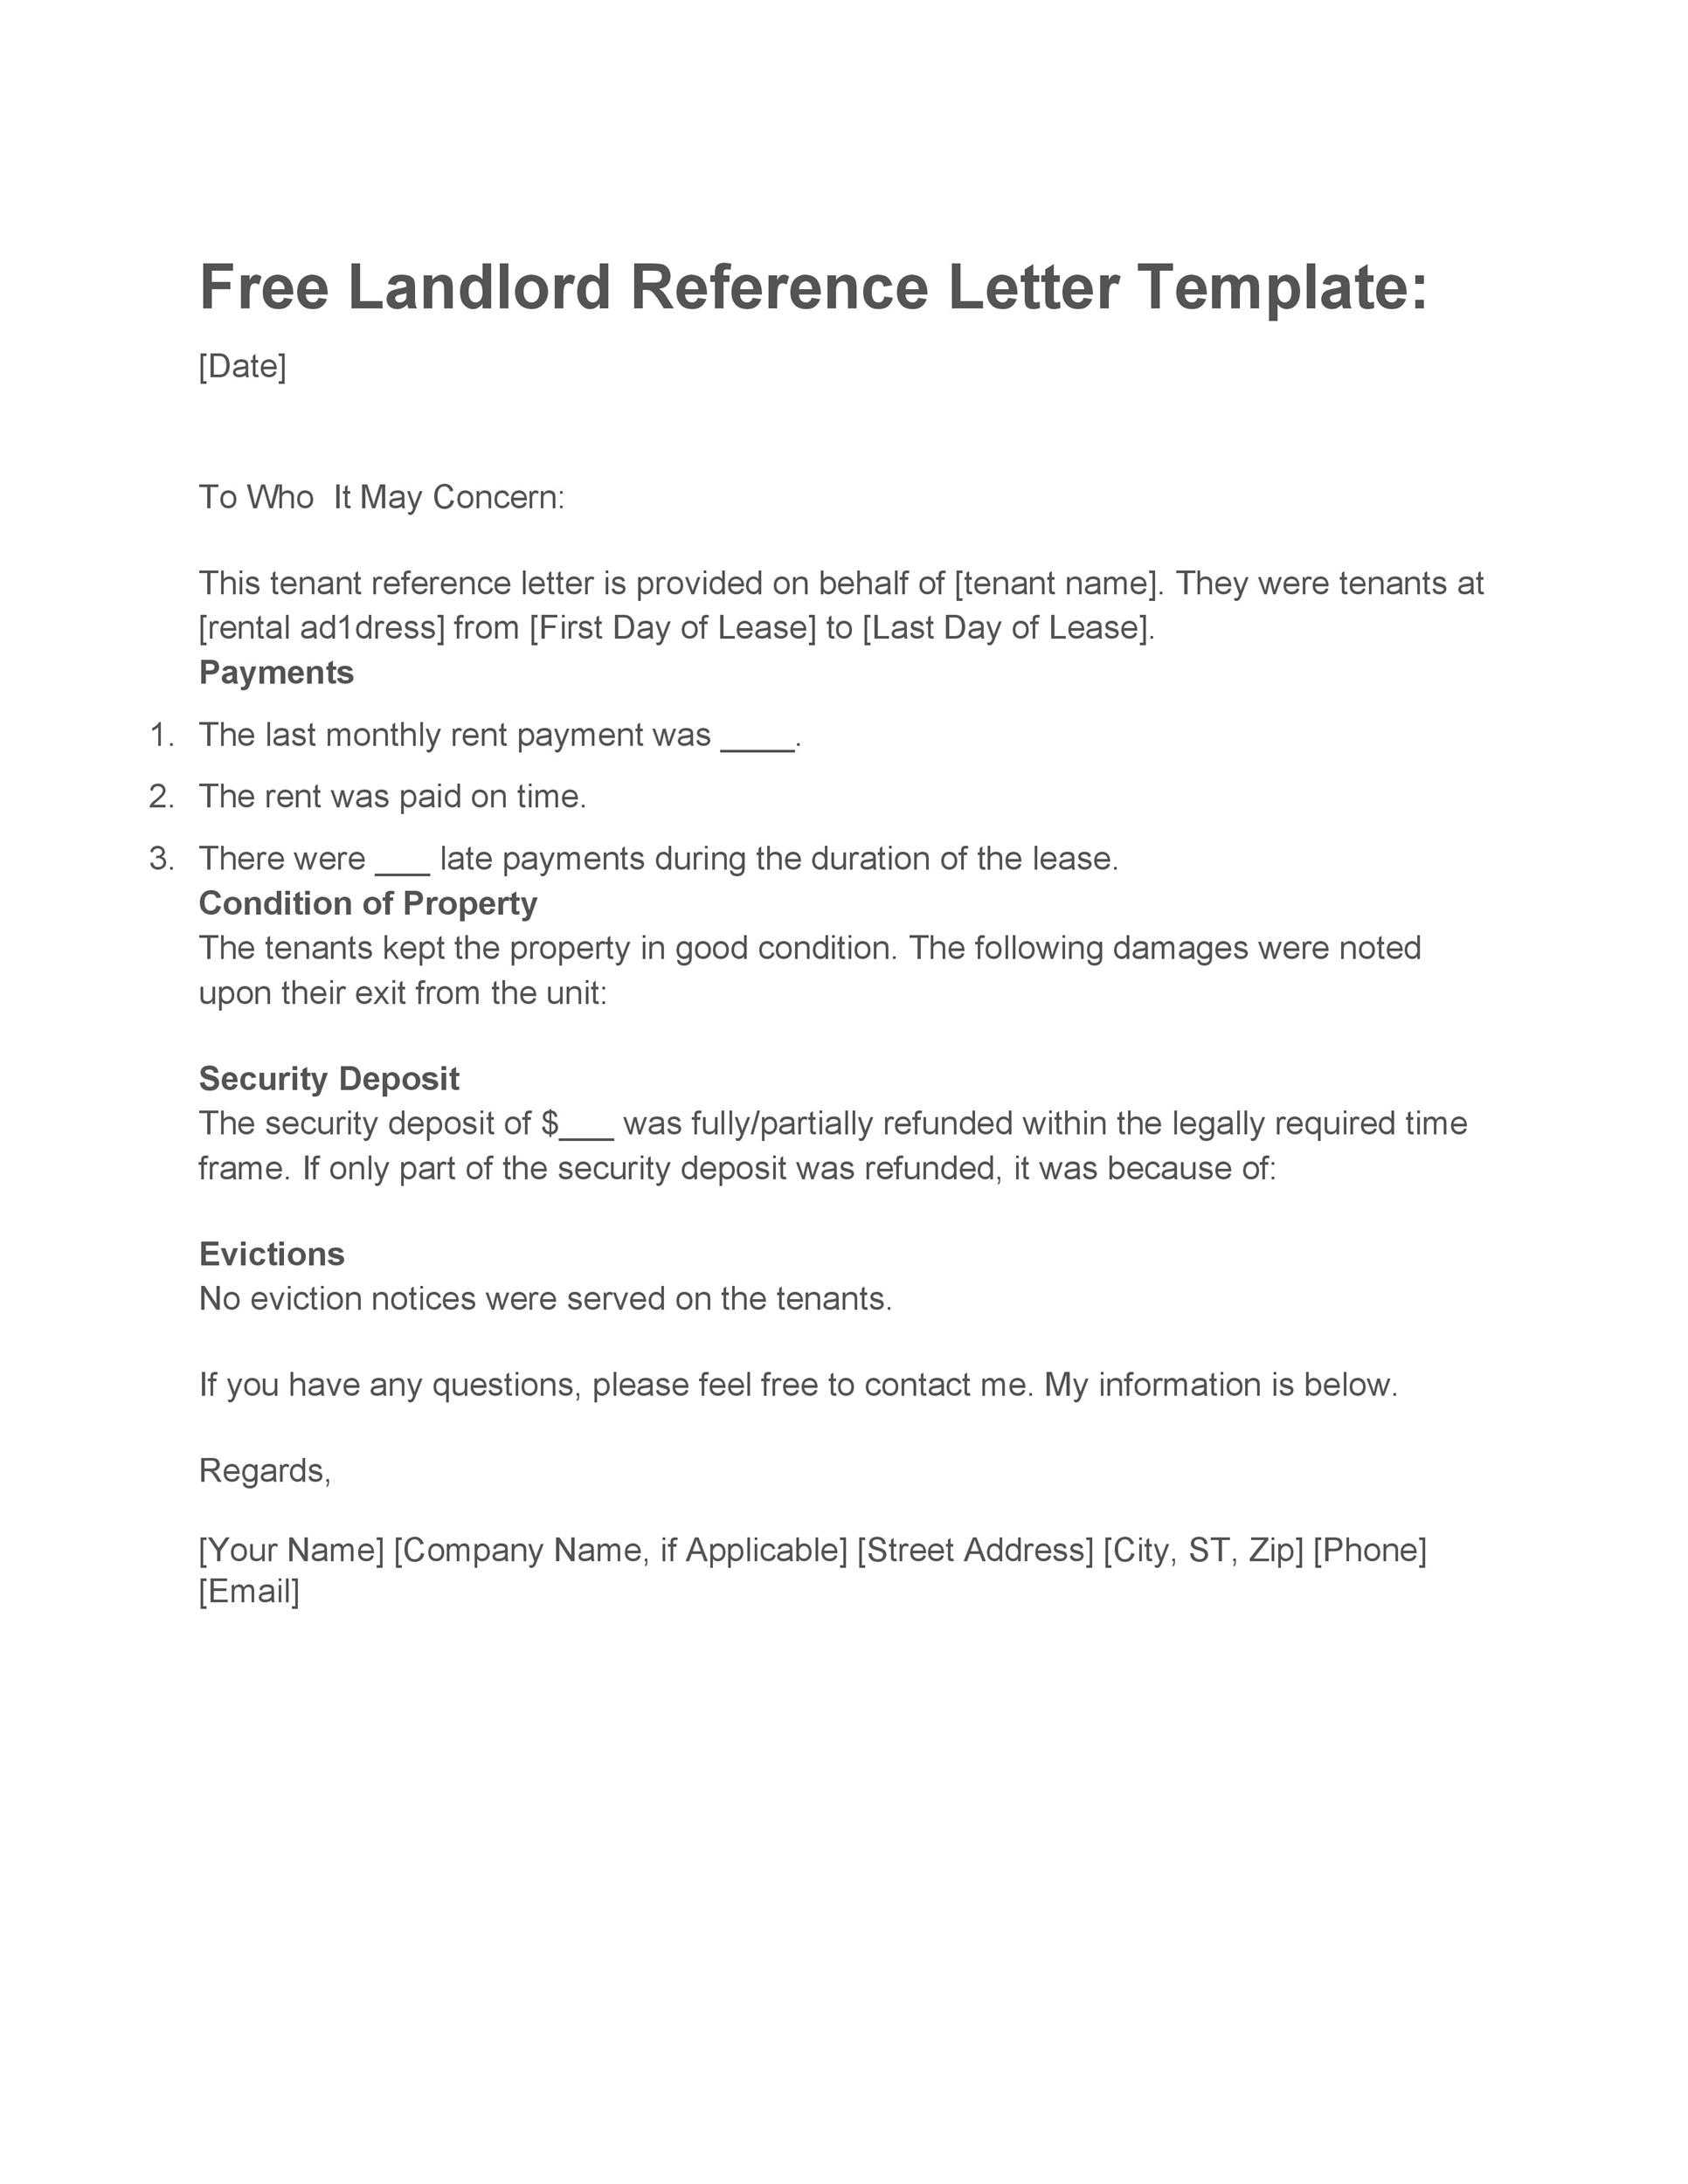 Sample Landlord Letter To Tenant For Damages from templatelab.com